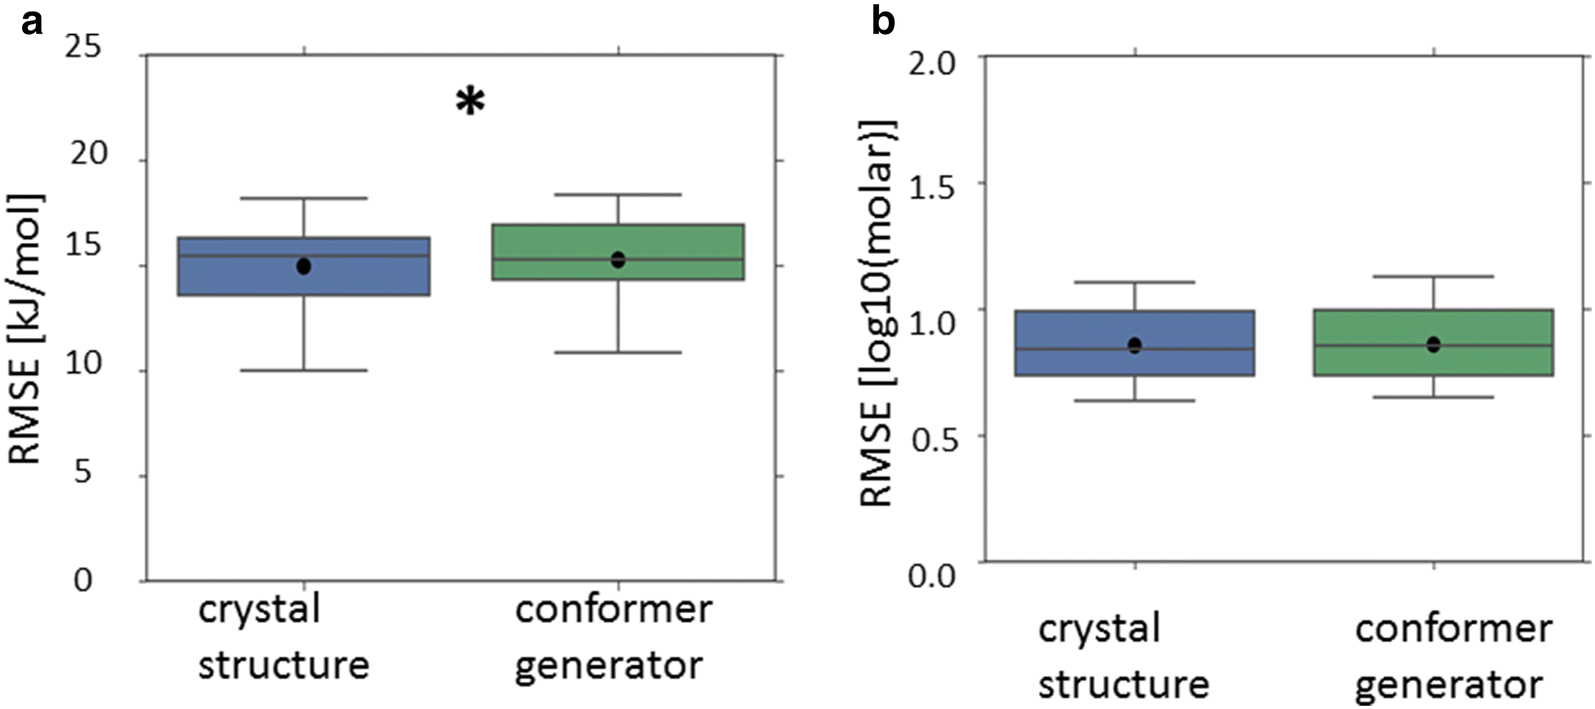 The Influence Of Solid State Information And Descriptor Selection On Crystal Focus Wiring Diagrams Fig 8